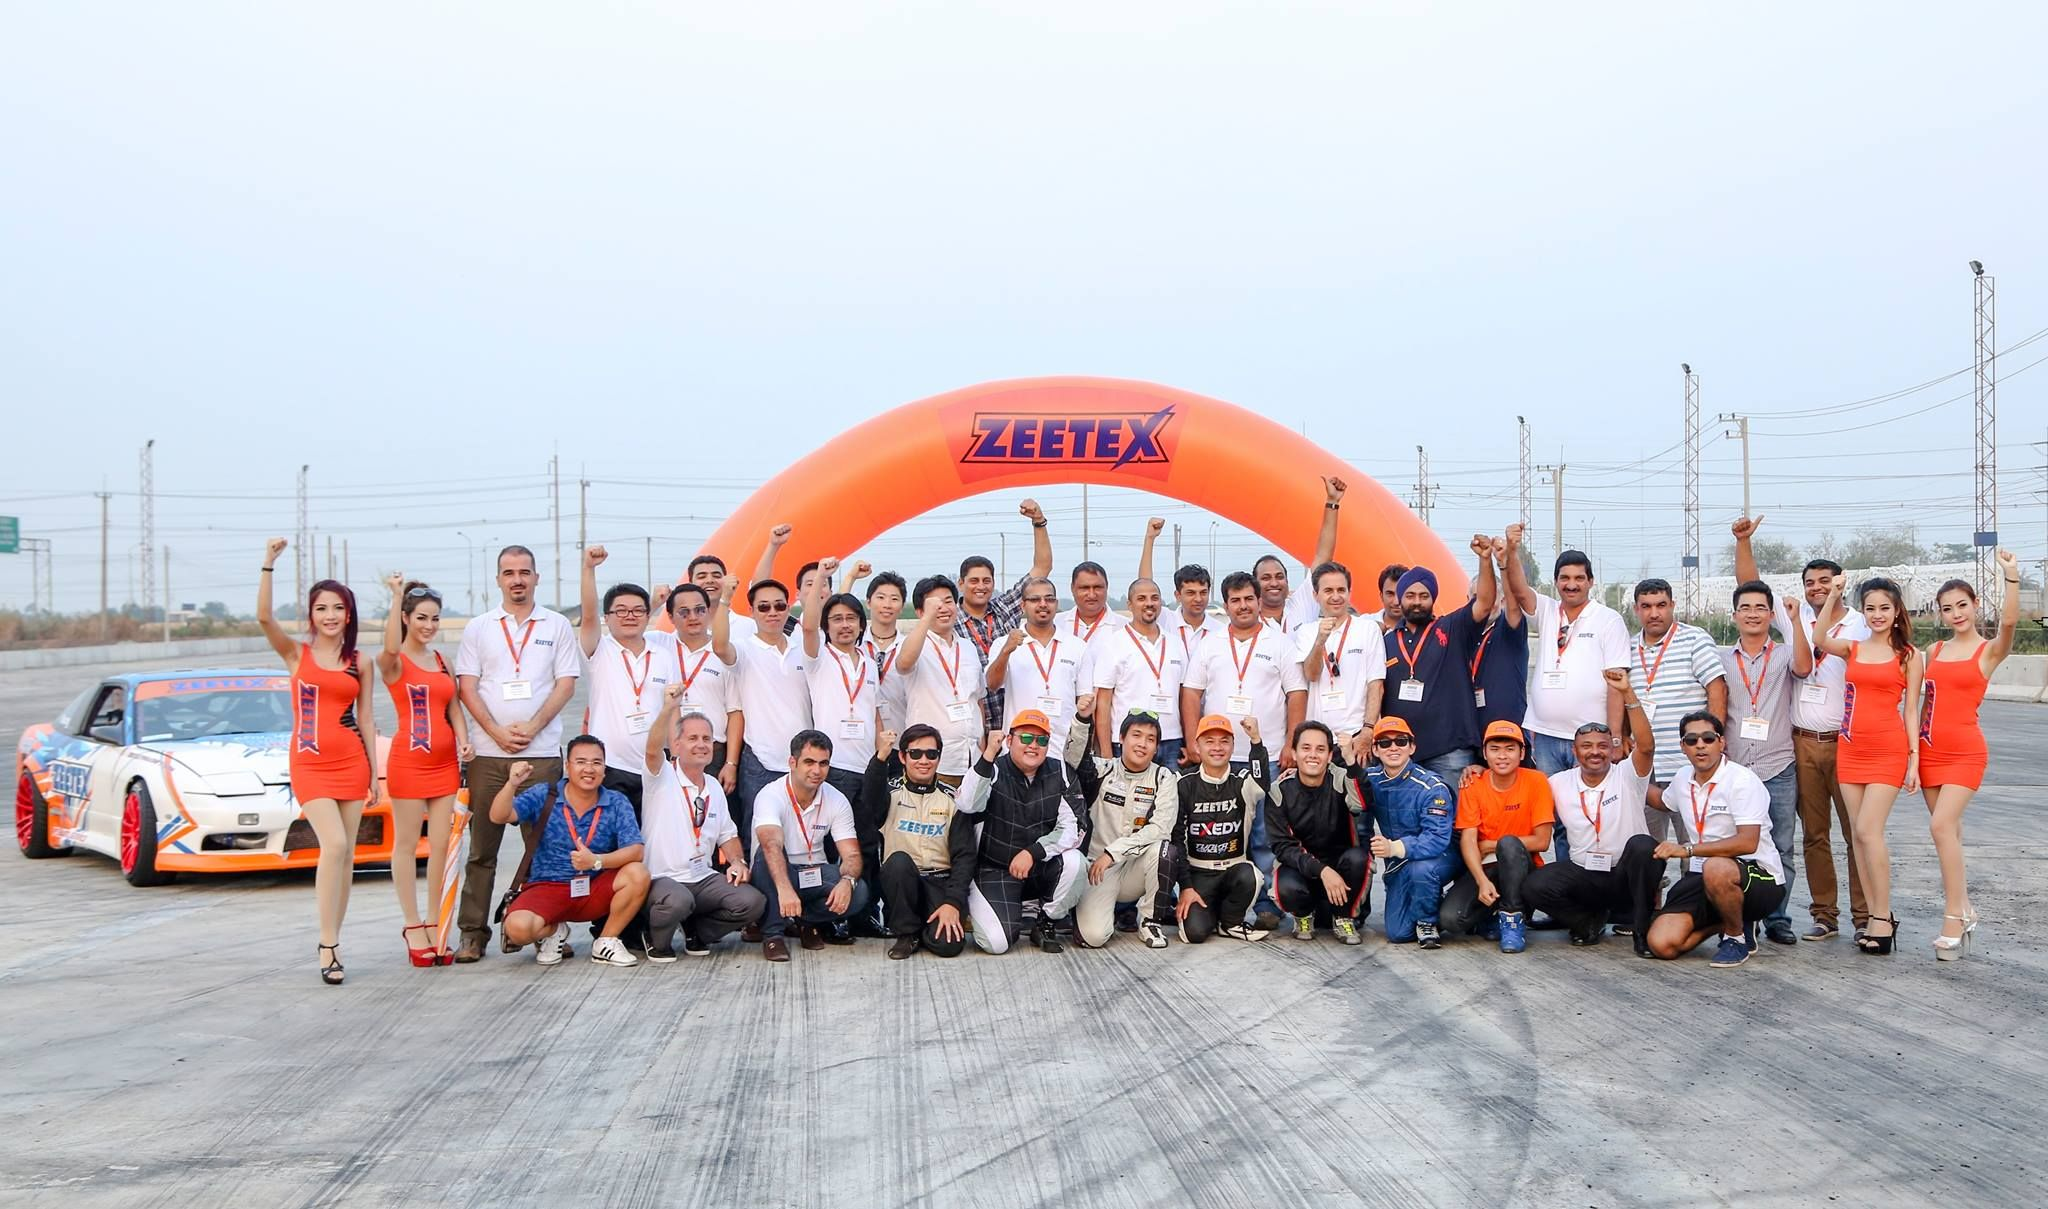 ZEETEX's new offerings to change the rules of the game - Thailand  #Product #Launch #Thailand #Zeetex #Tires